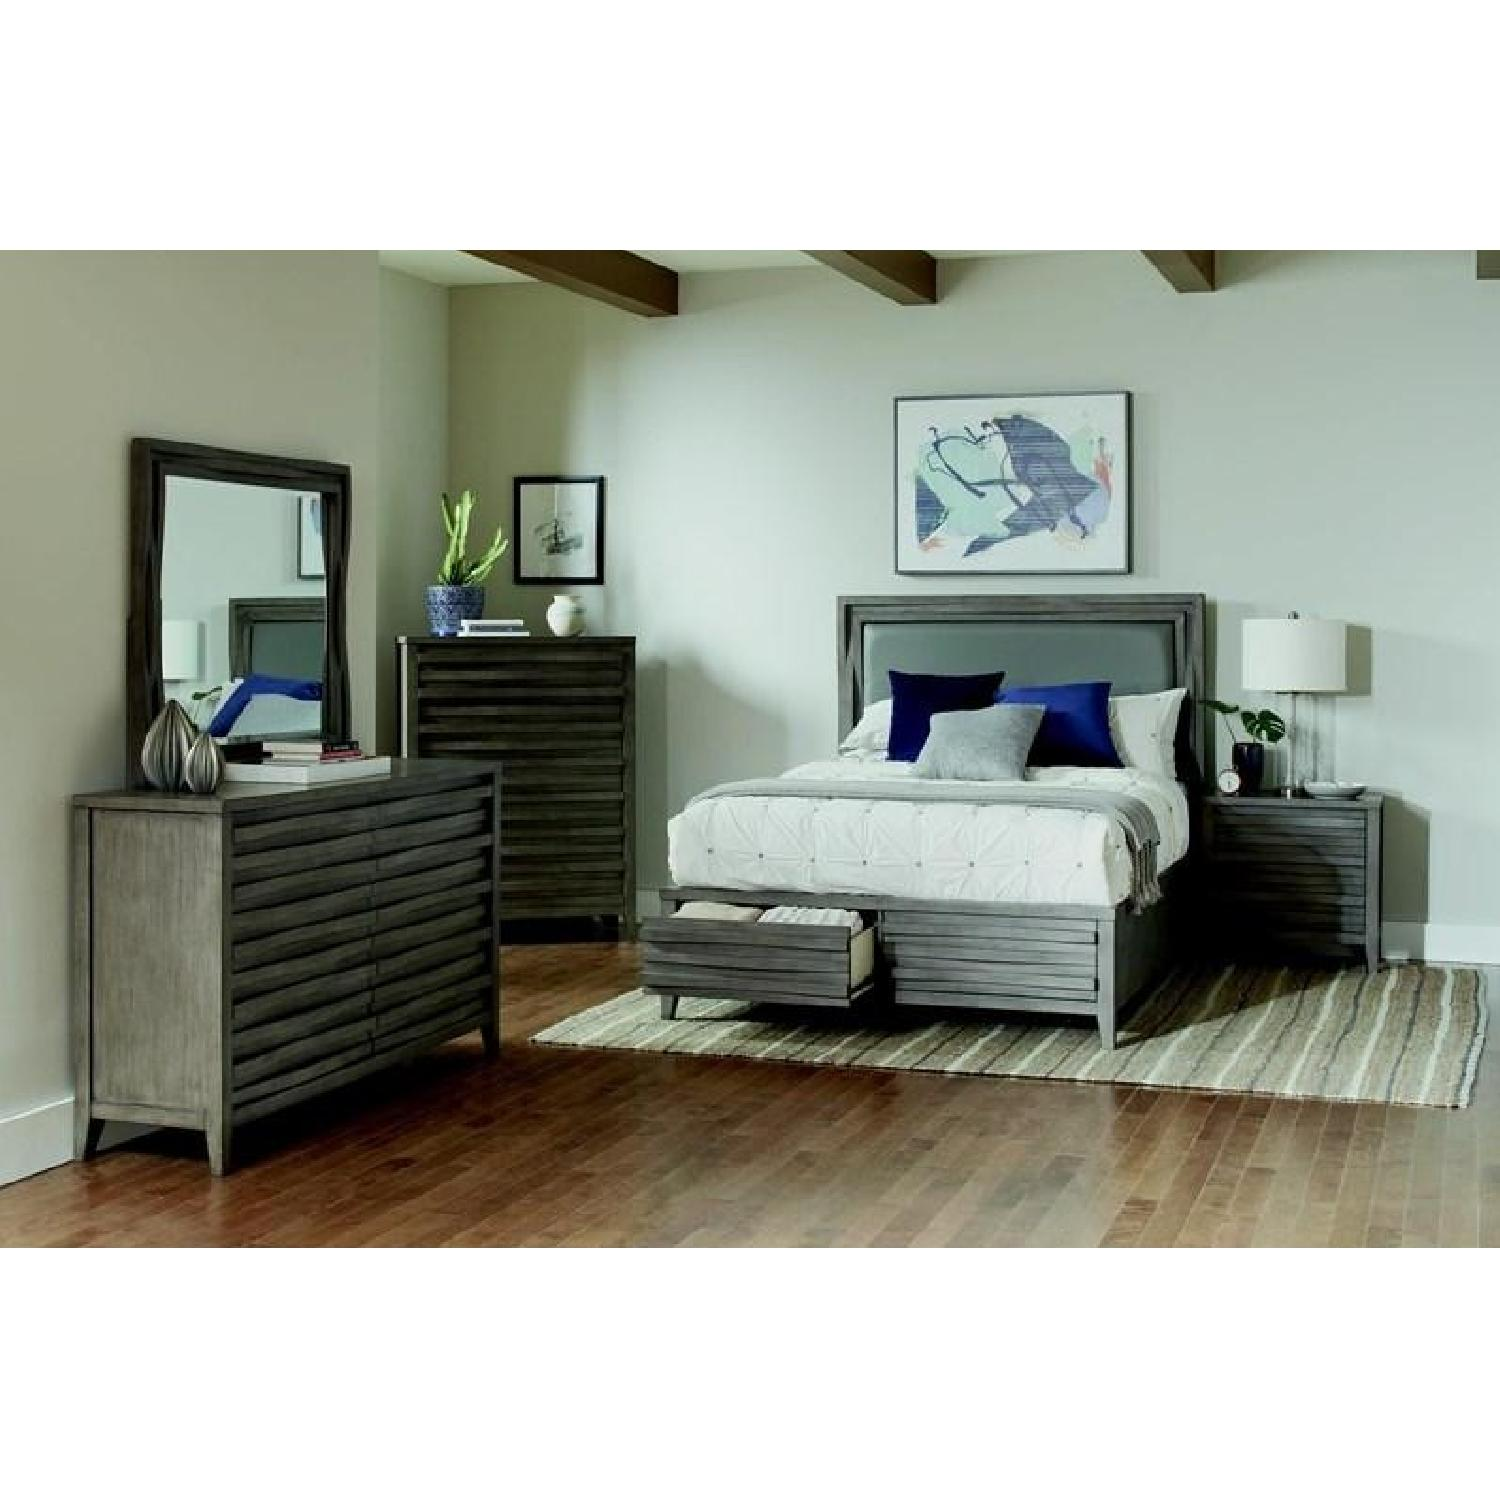 Queen Bed in Dark Taupe w/ 2 Storage Drawers - image-5